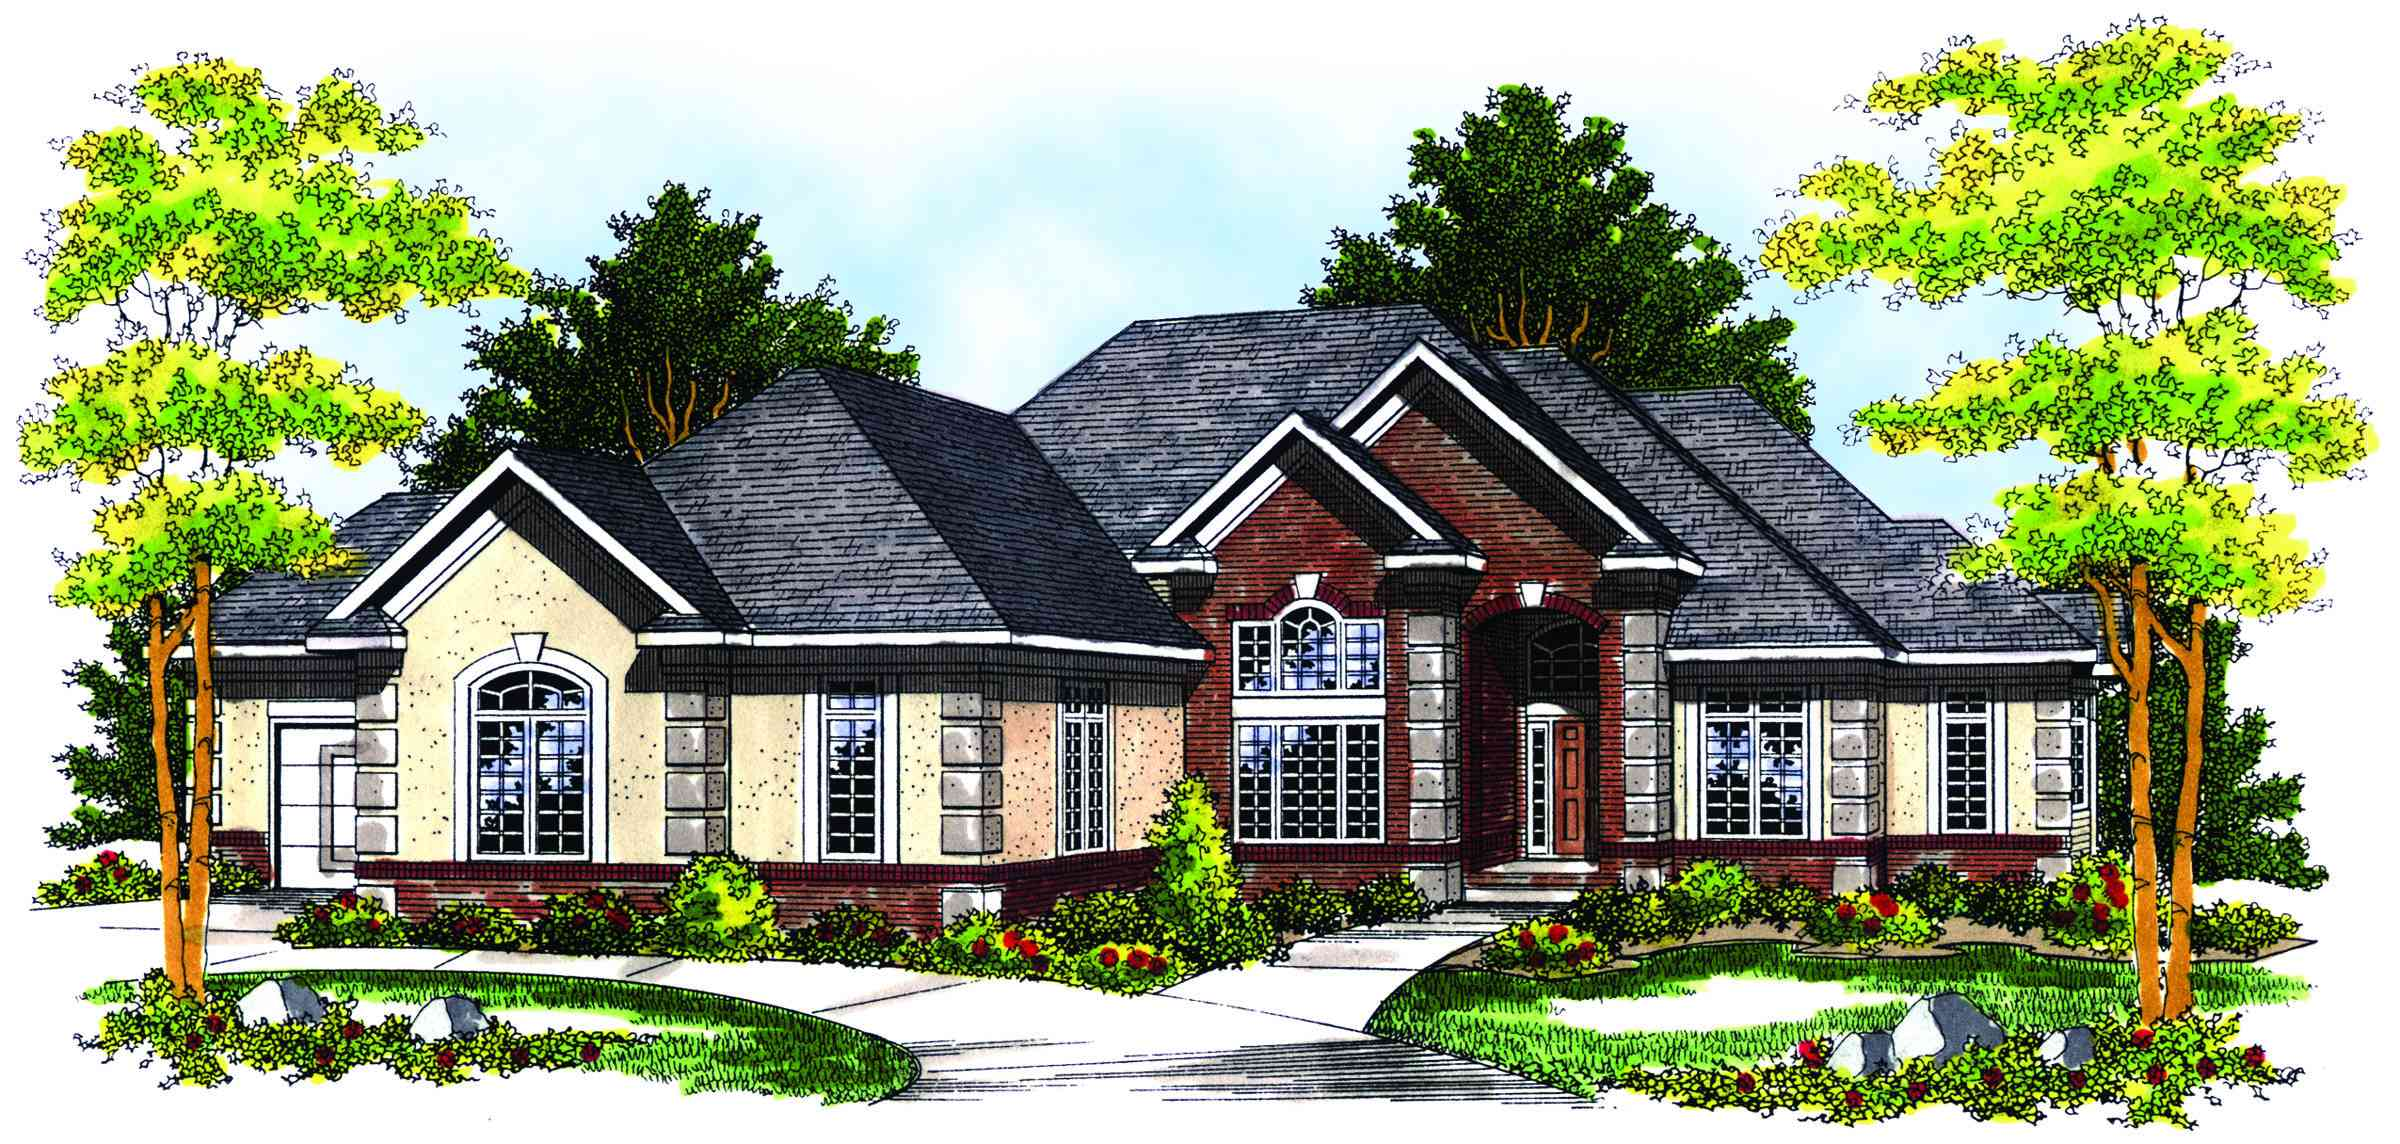 Perfect for hillside lots 89145ah 1st floor master Hillside house plans for sloping lots